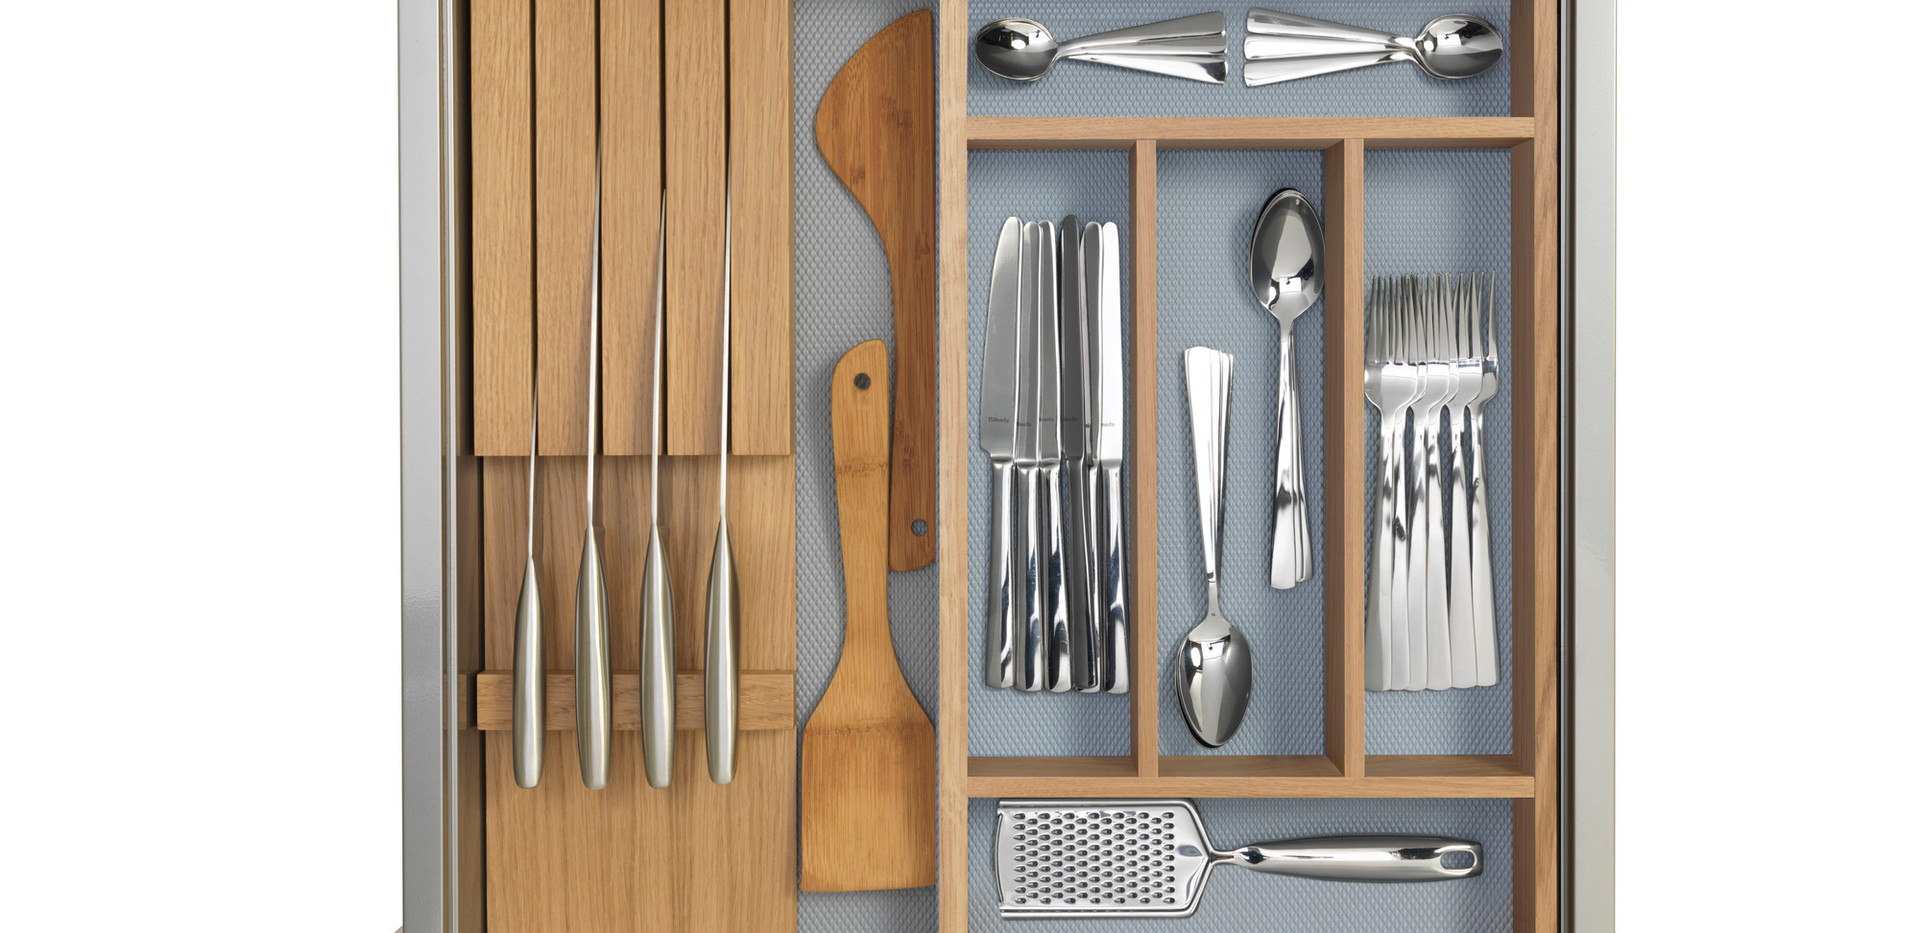 Knife Block and Cutlery Tray